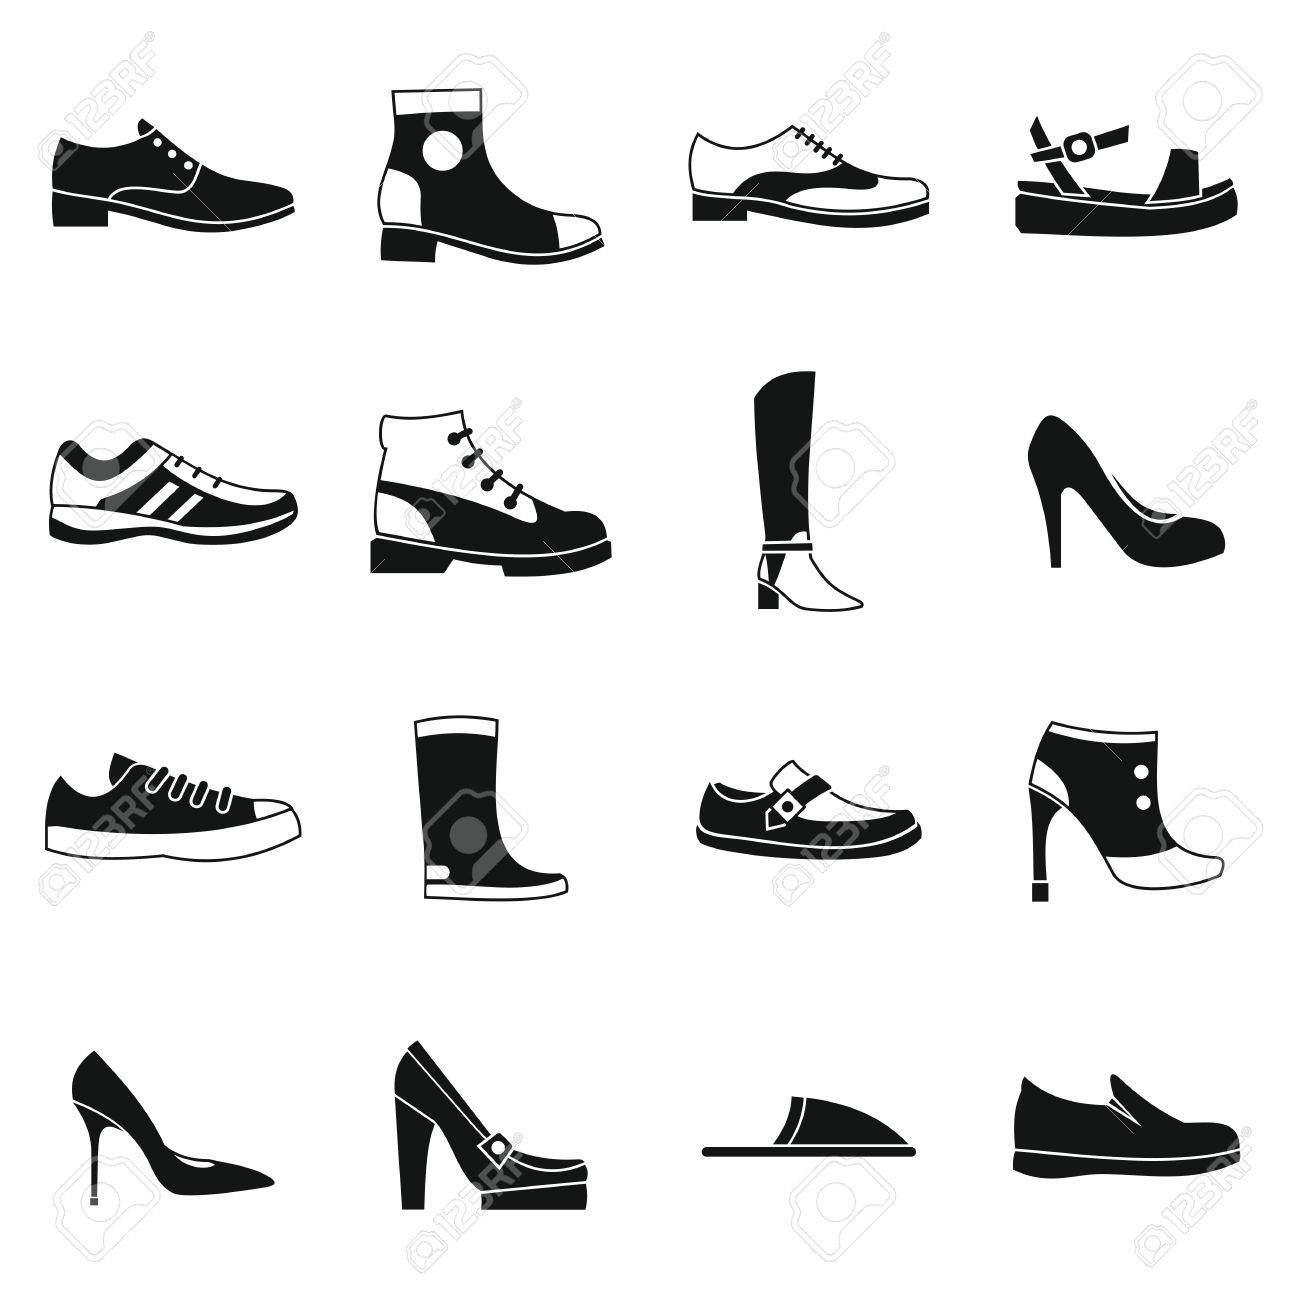 a290954fe3 Shoe icons set in simple style. Men and women shoes set collection vector  illustration Stock